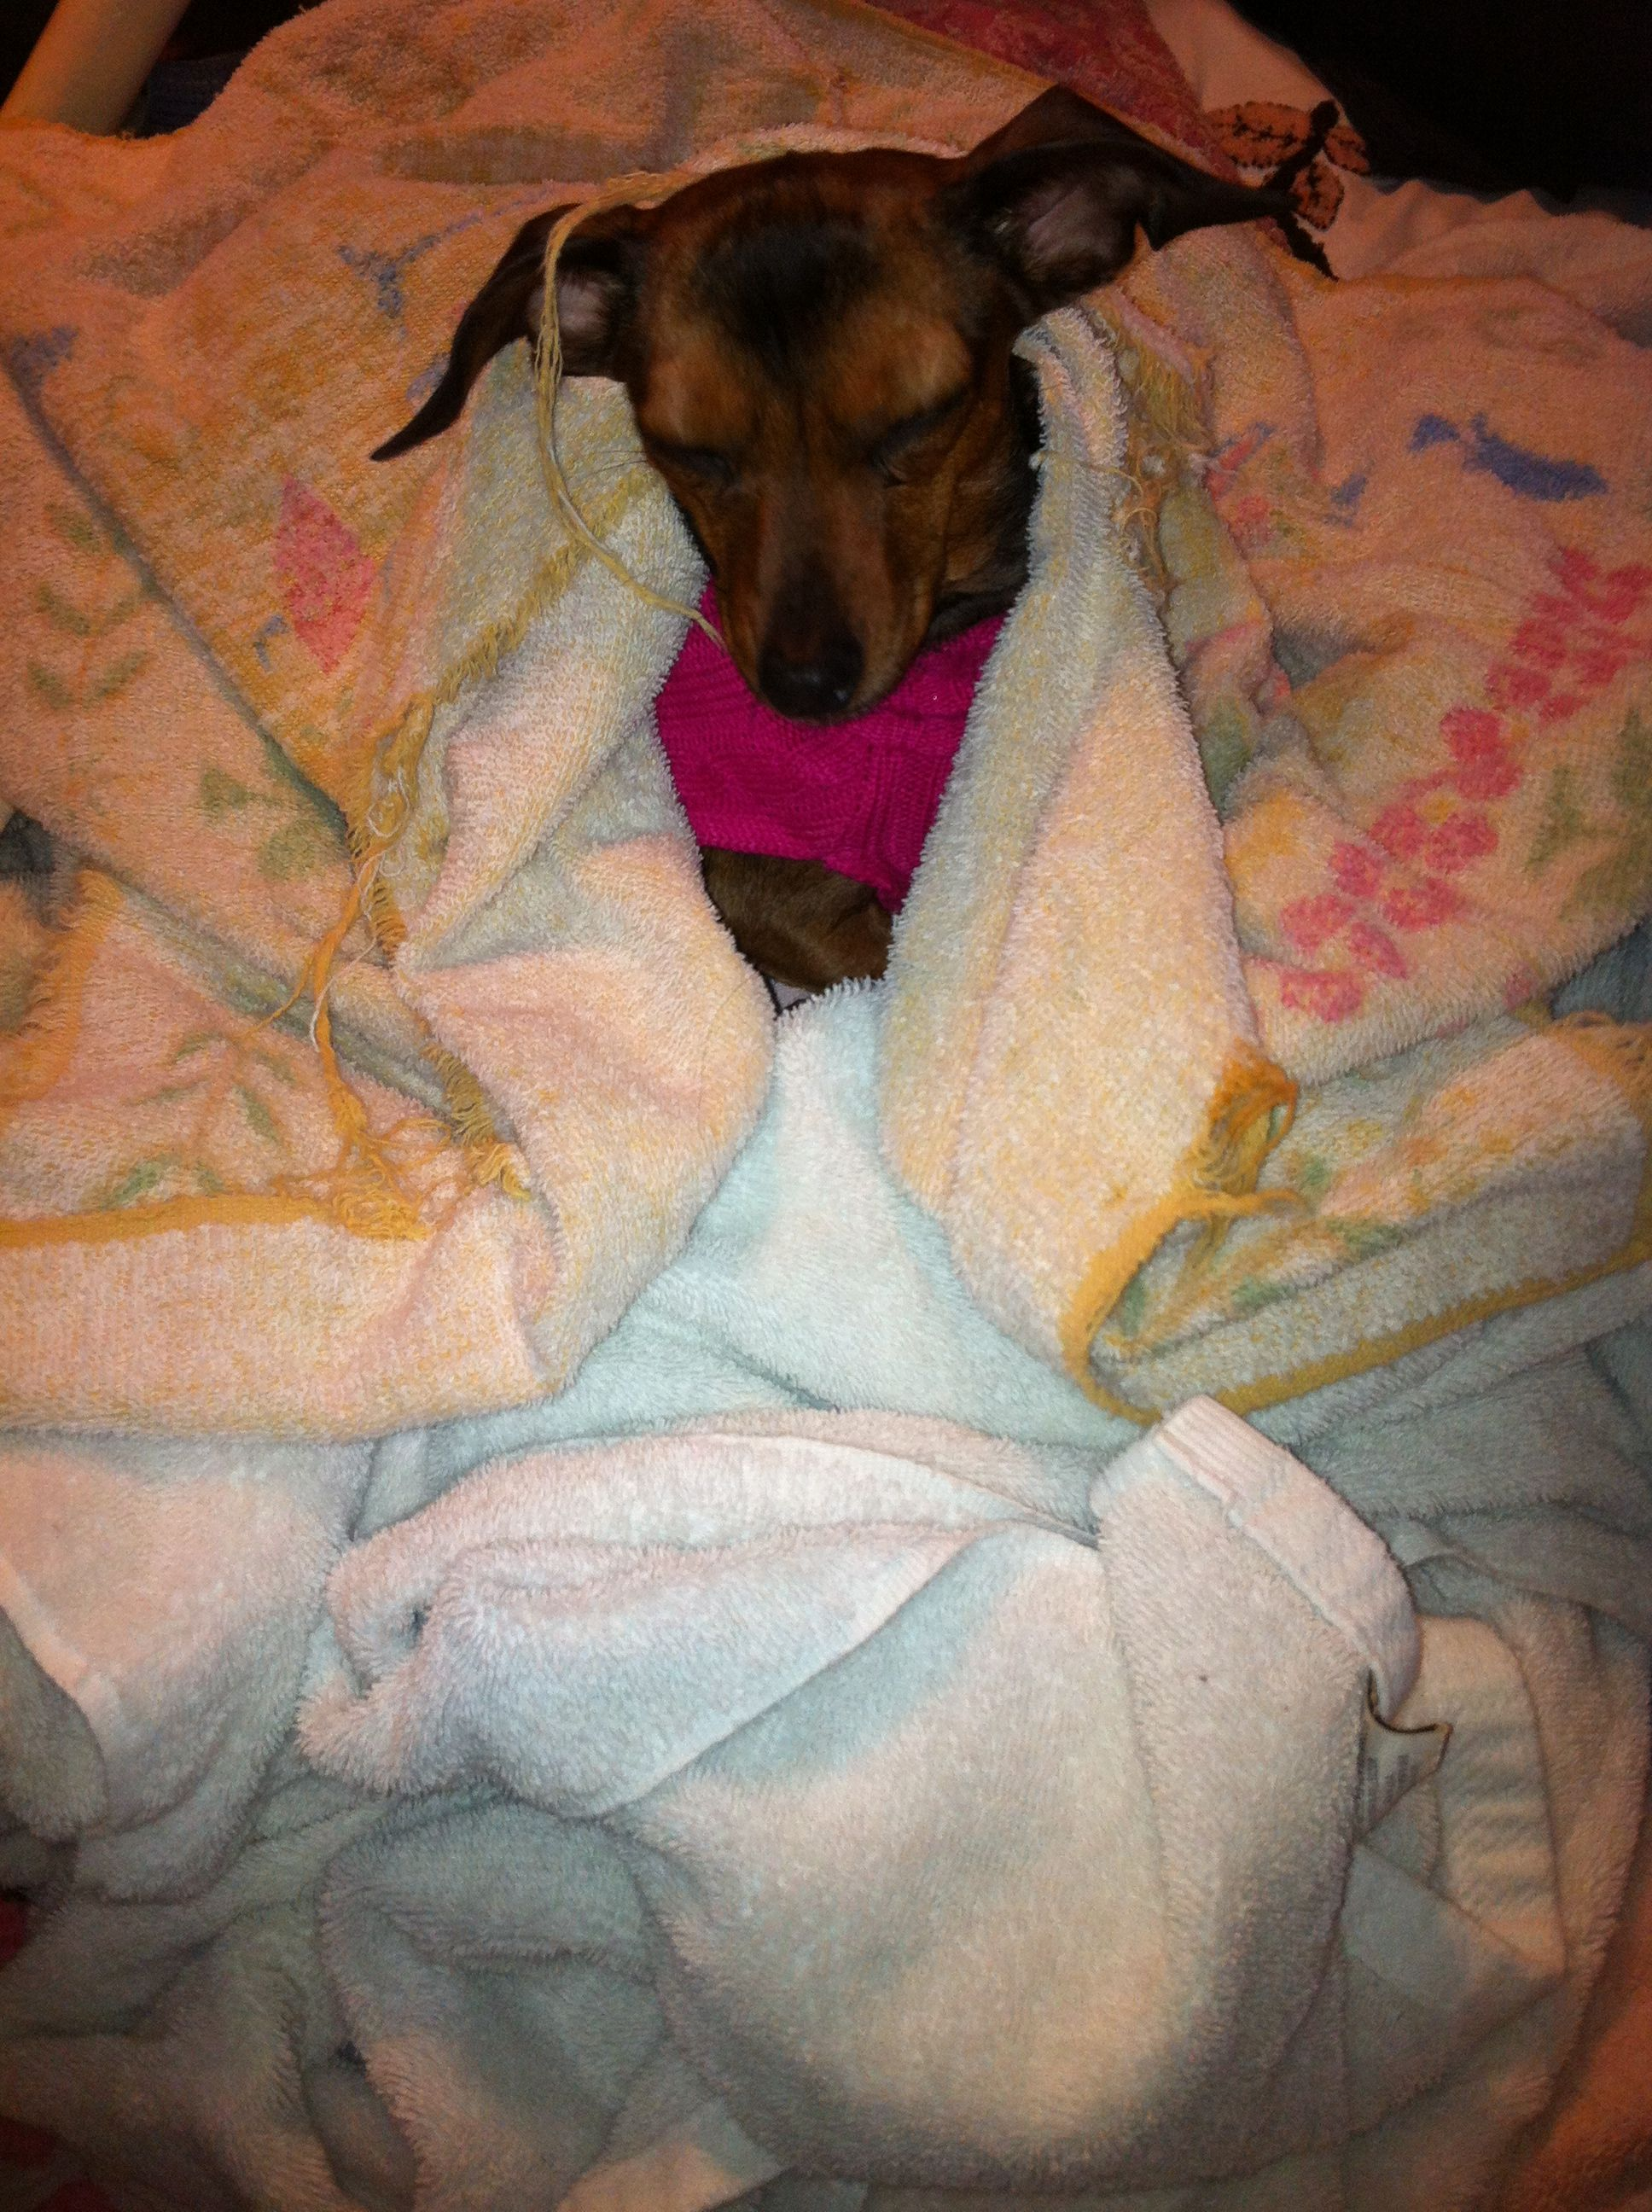 Tiny LOVES warm towels out of the dryer!